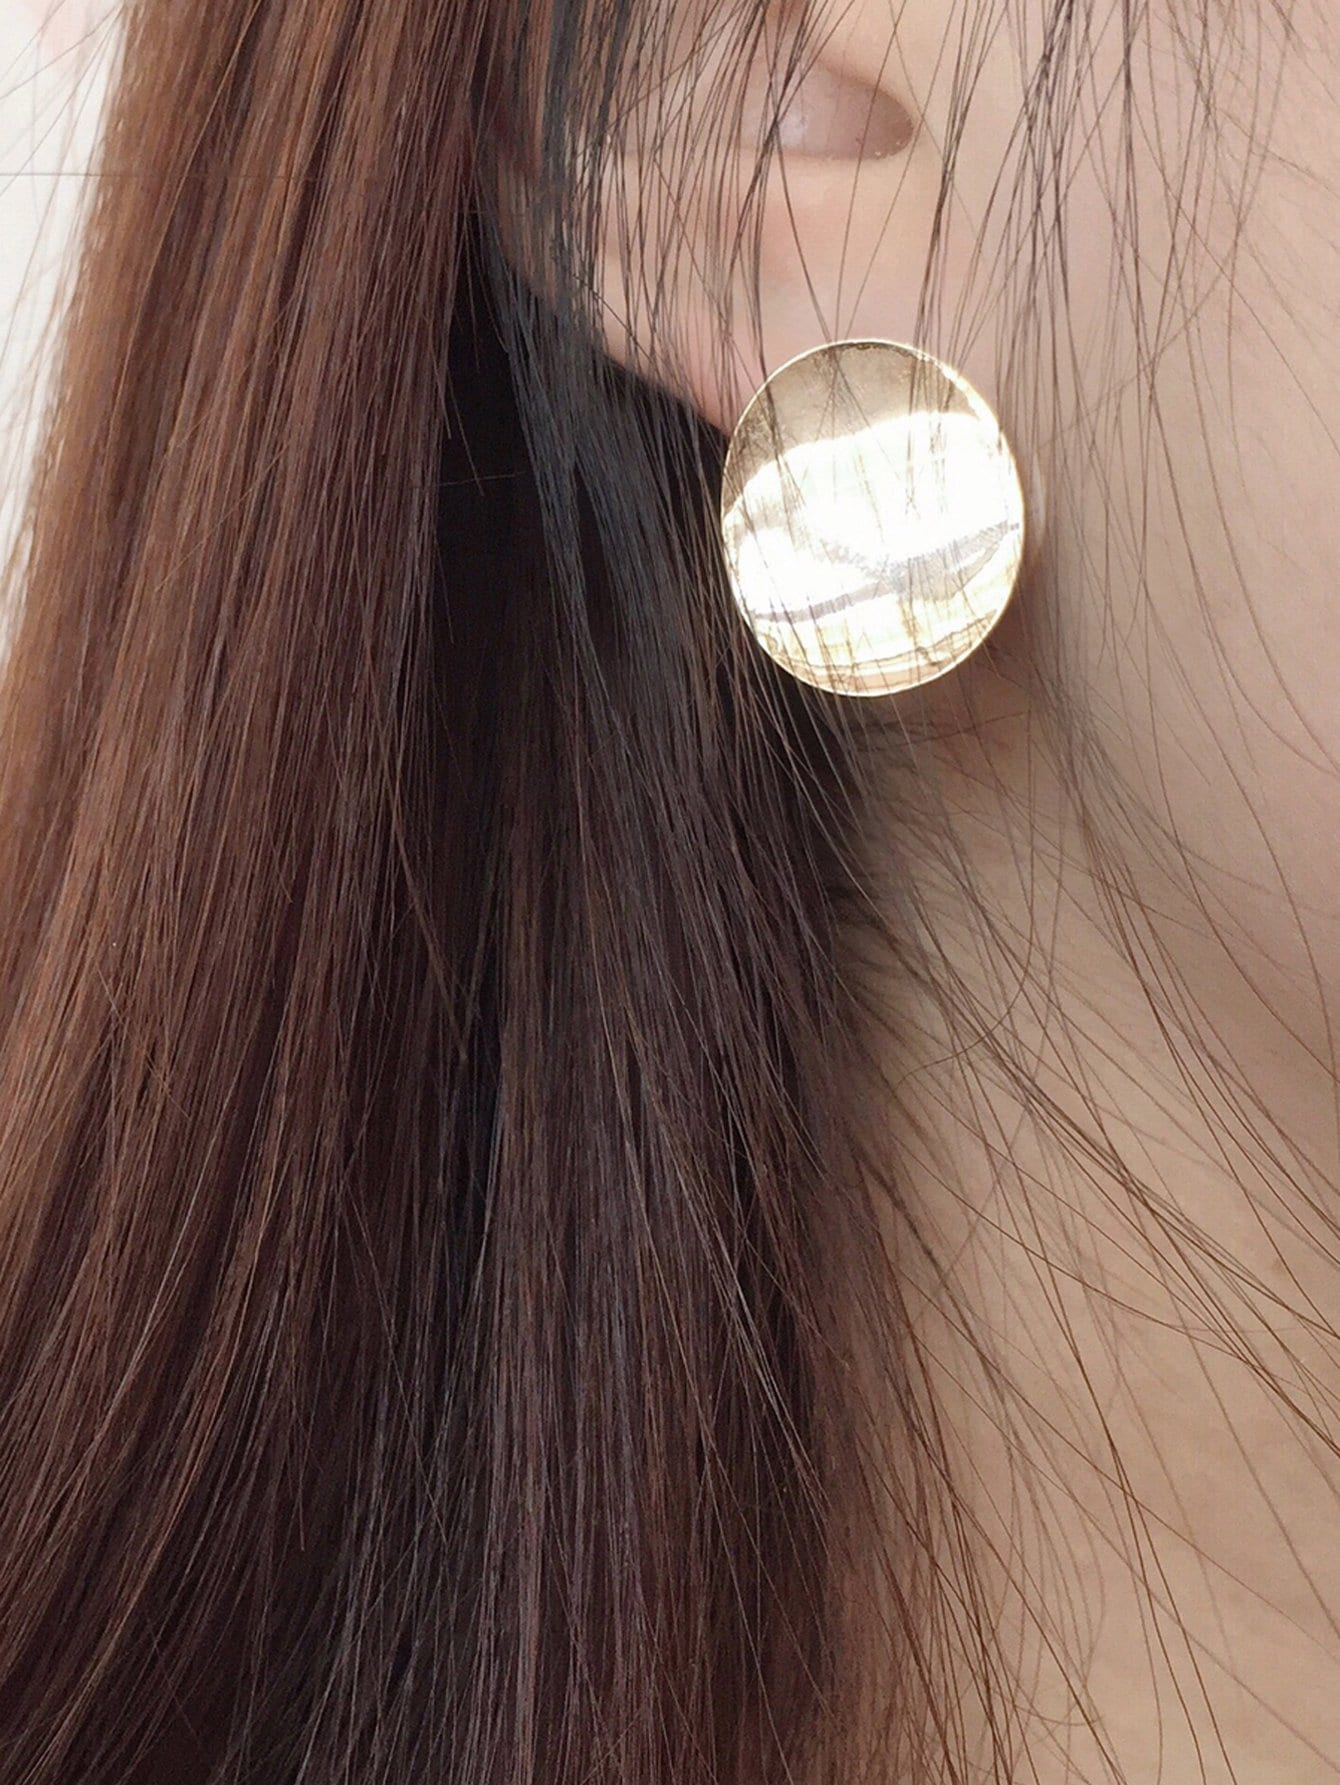 flat disc stilla gold astley stud yellow plated earrings uk vermeil clarke